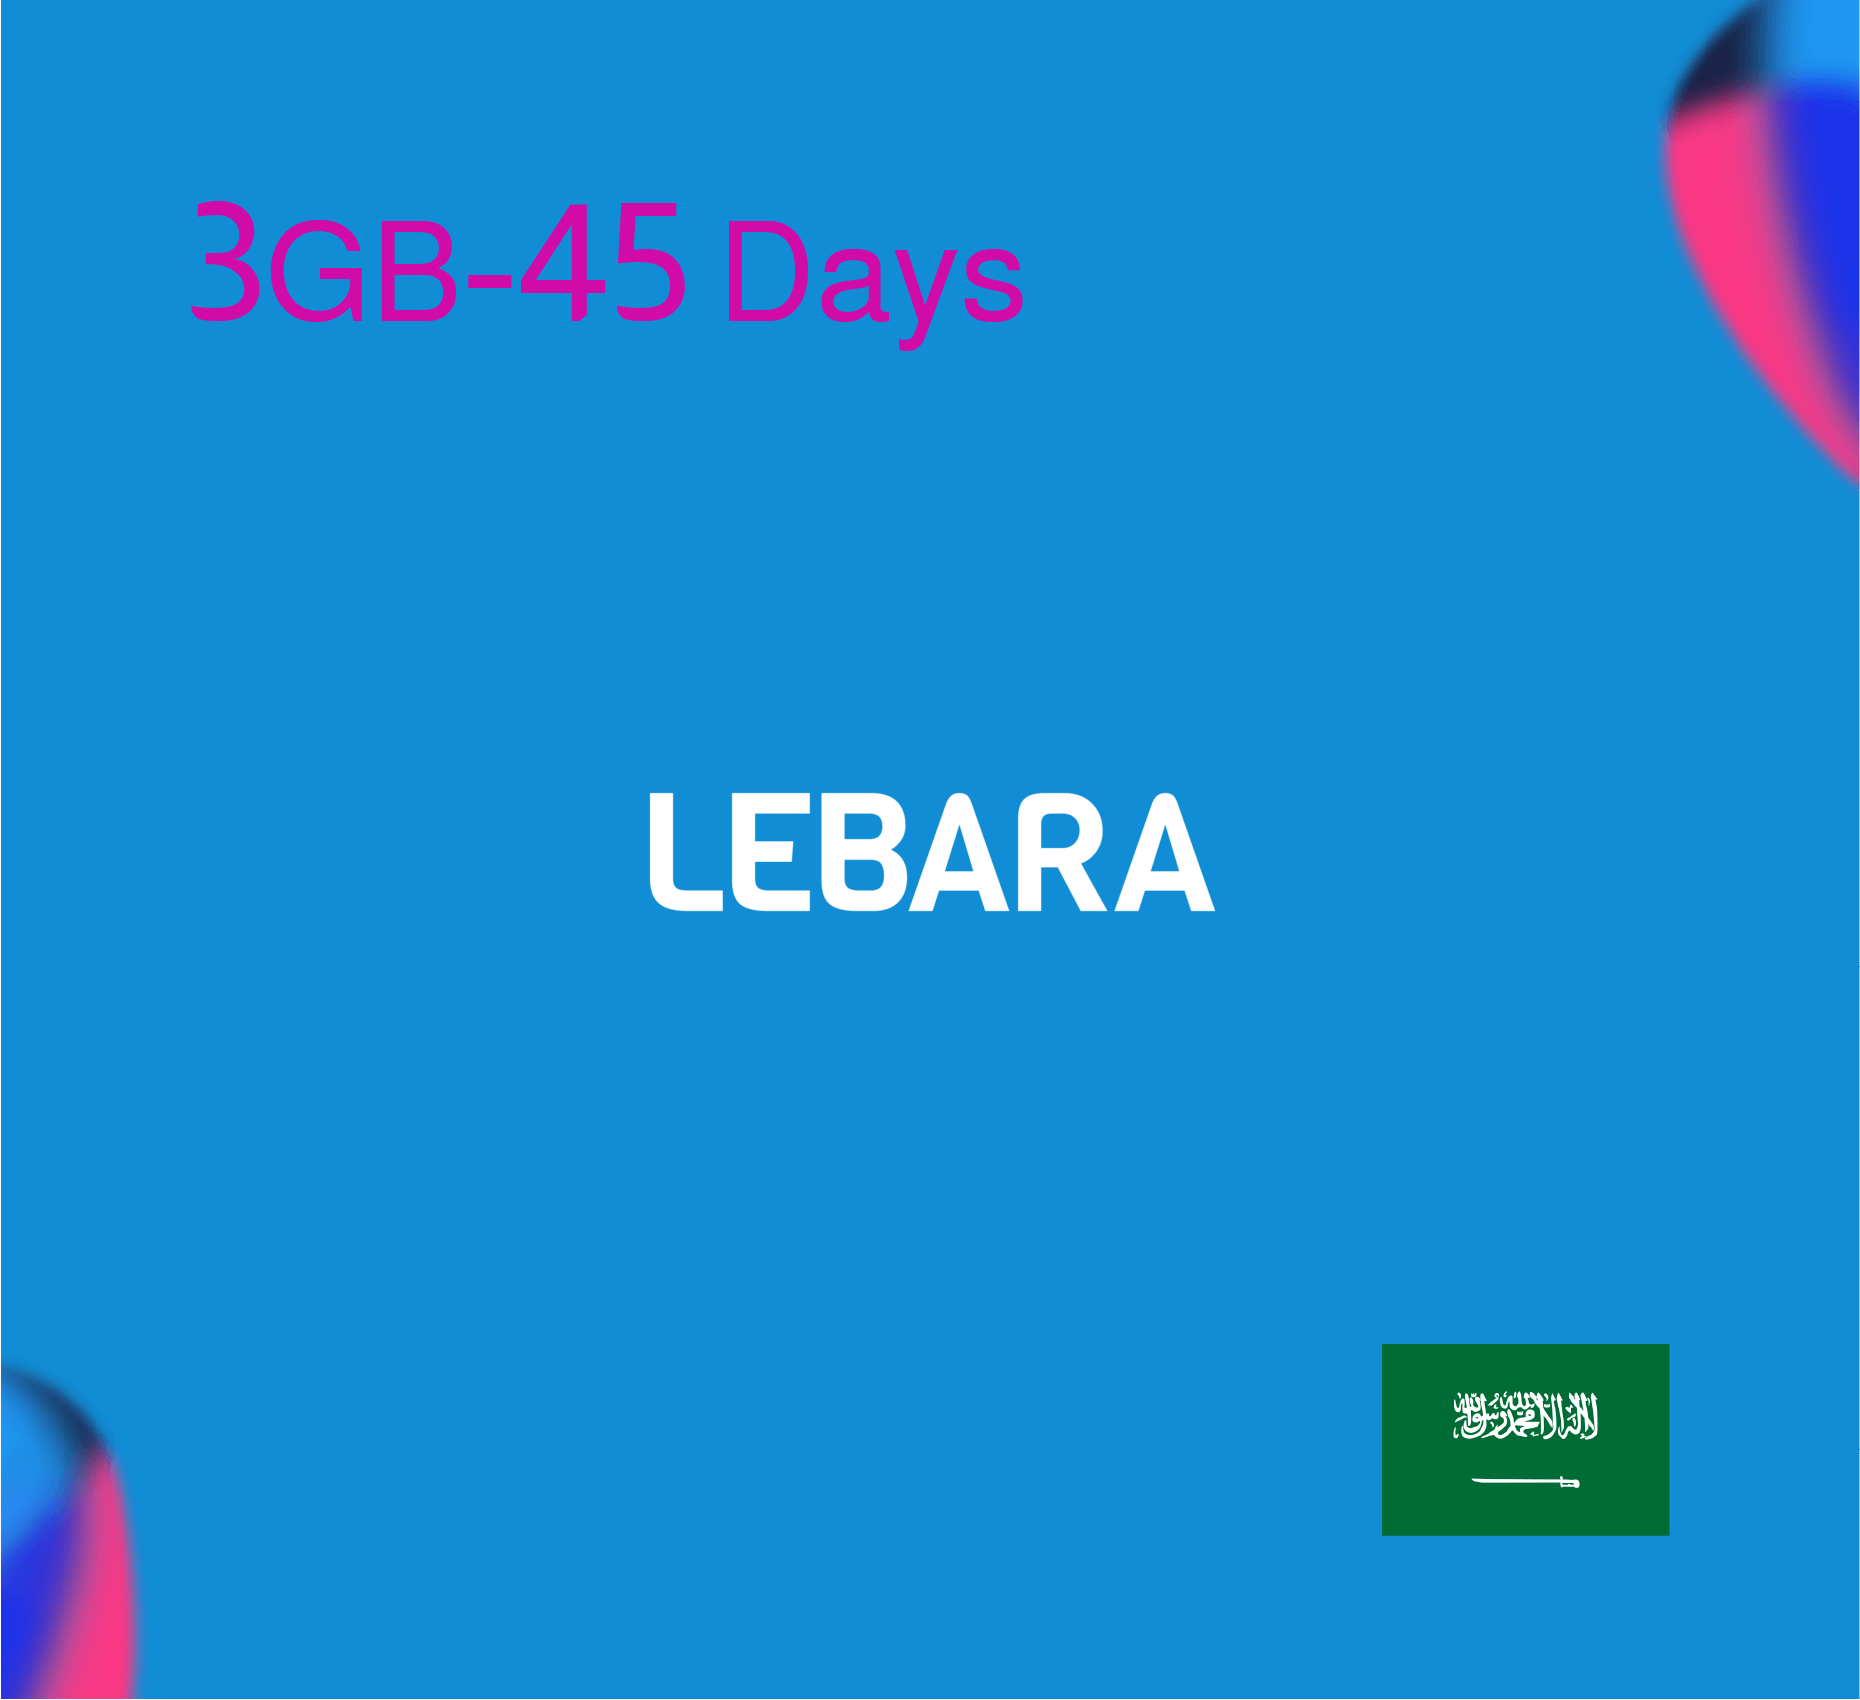 Lebara Data Recharge 3GB - 45 Days